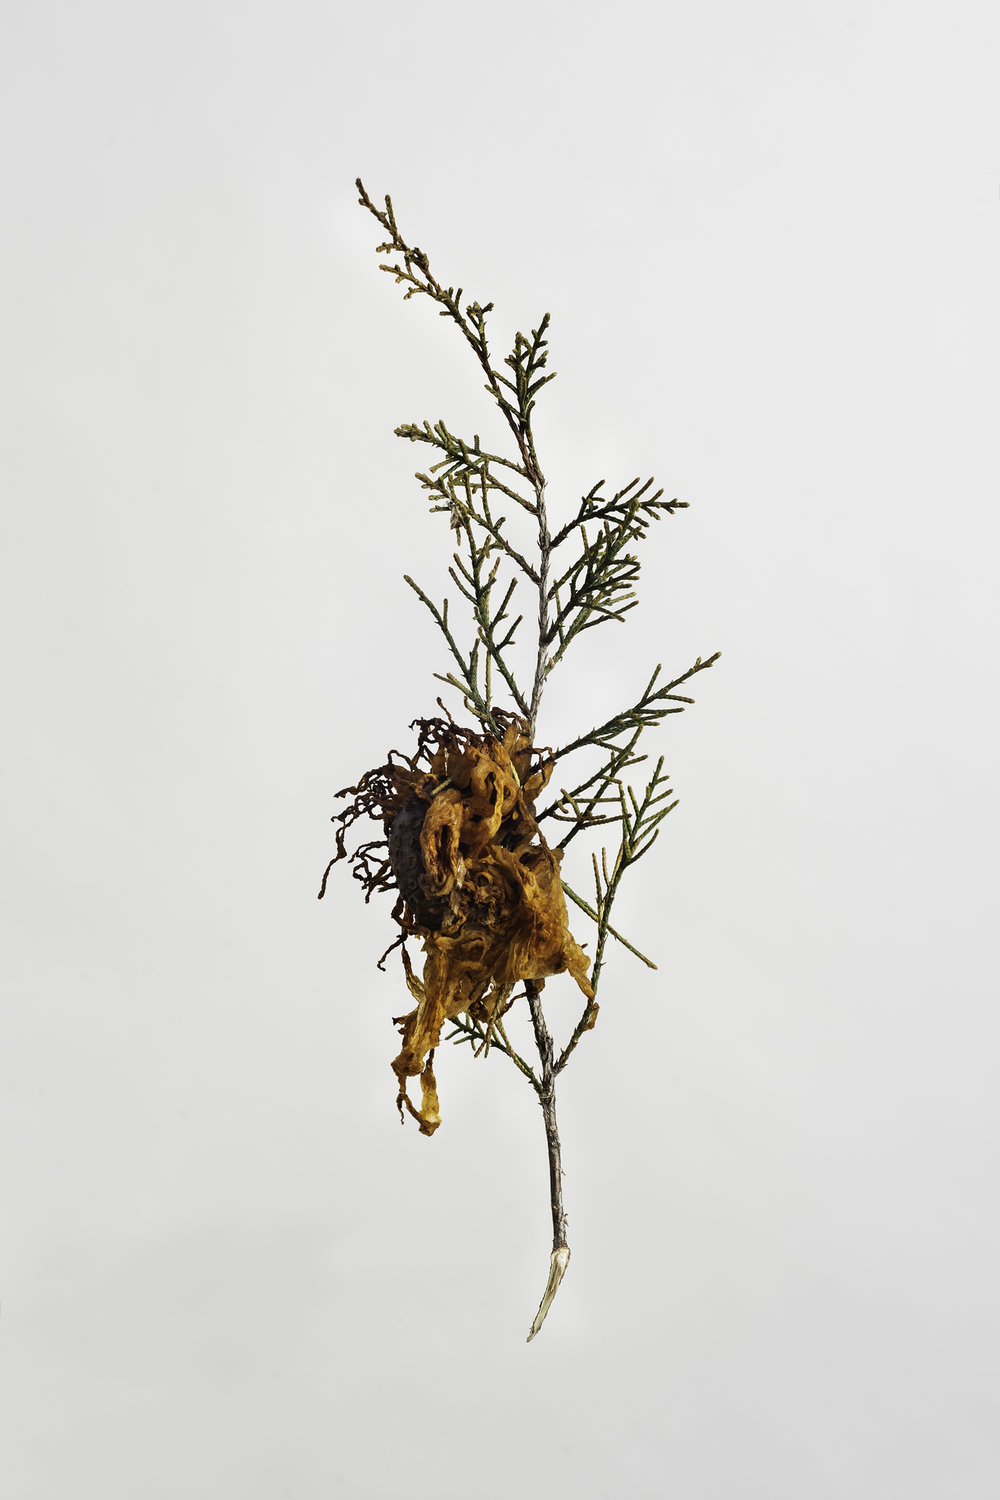 Gymnosporangium juniperi-virginianae - Cedar Apple Rust